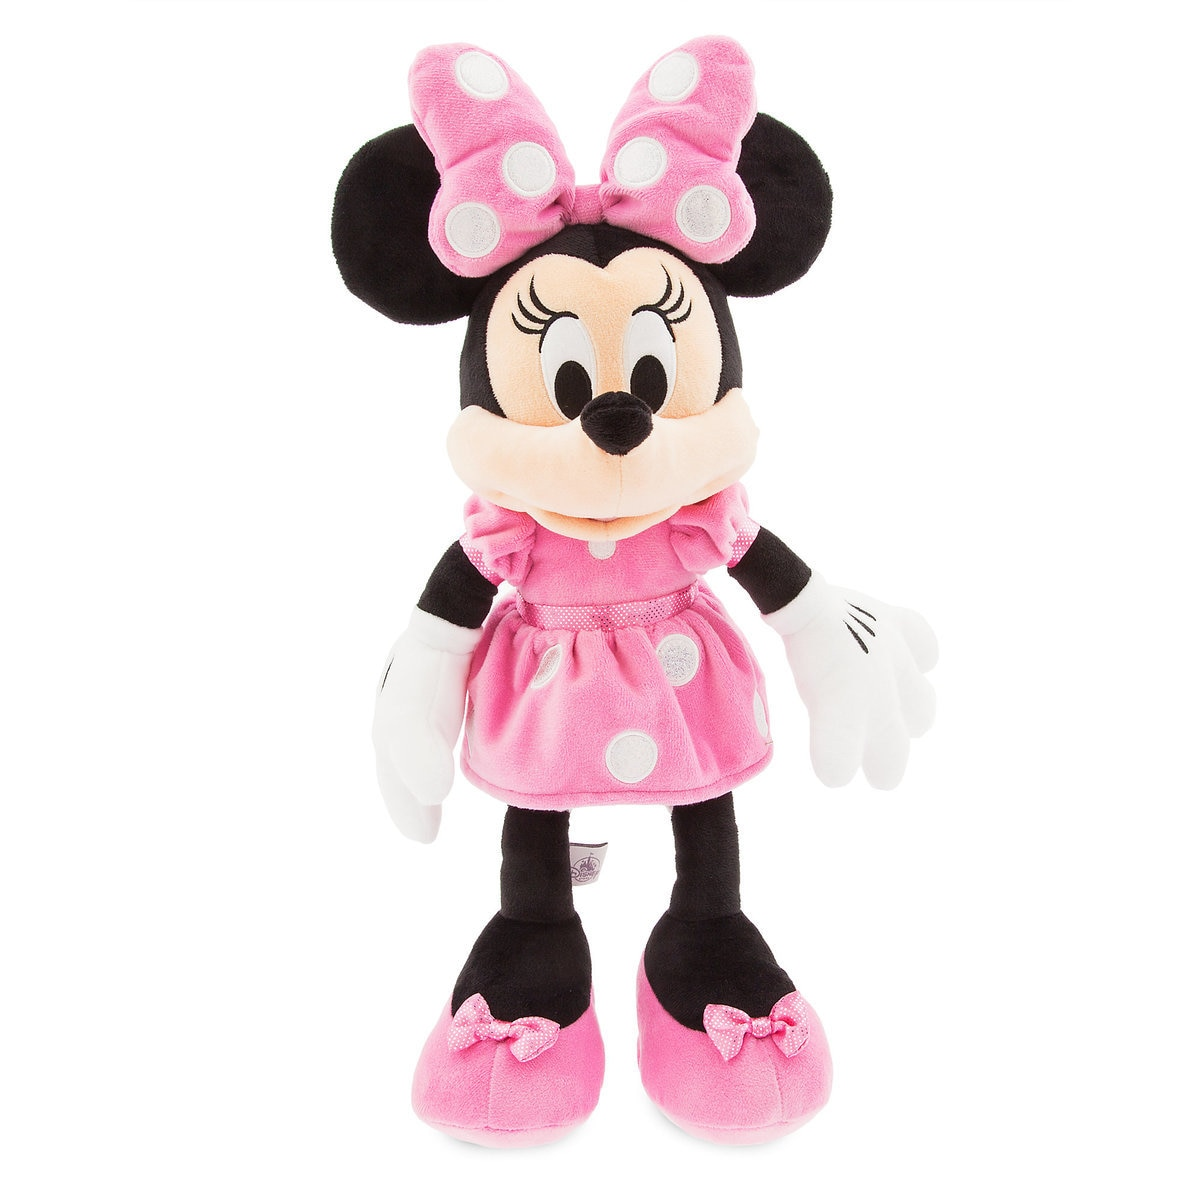 Product Image of Minnie Mouse Plush - Pink - Medium - 18'' # 1